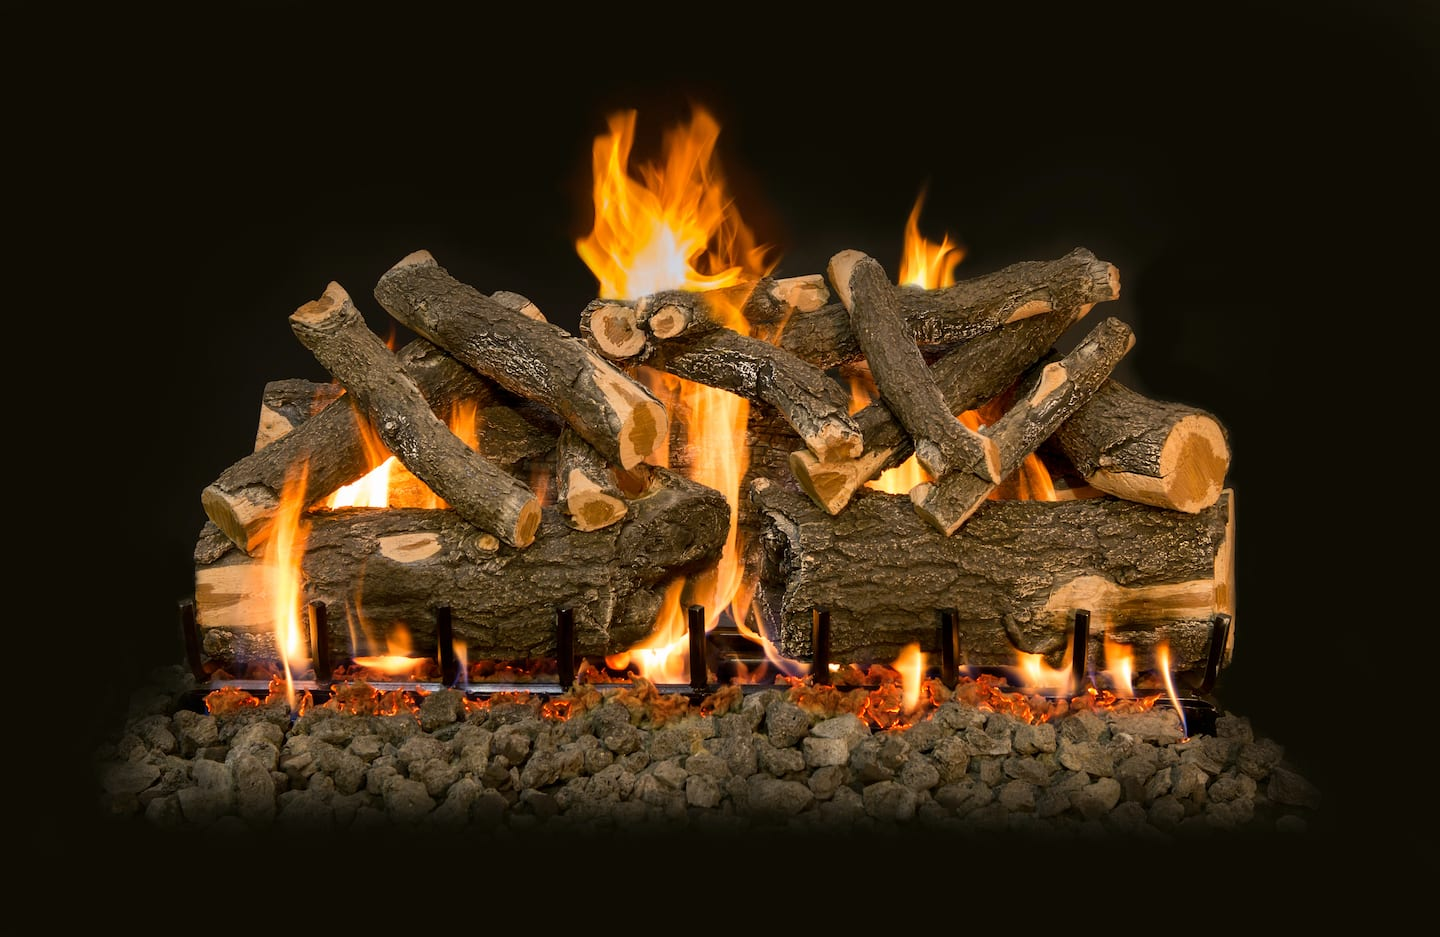 propane gas log fireplace. ceramic gas logs burning with flames and embers  Fireplaces How To Repair A Gas Fireplace If It Won t Turn On Angie s List